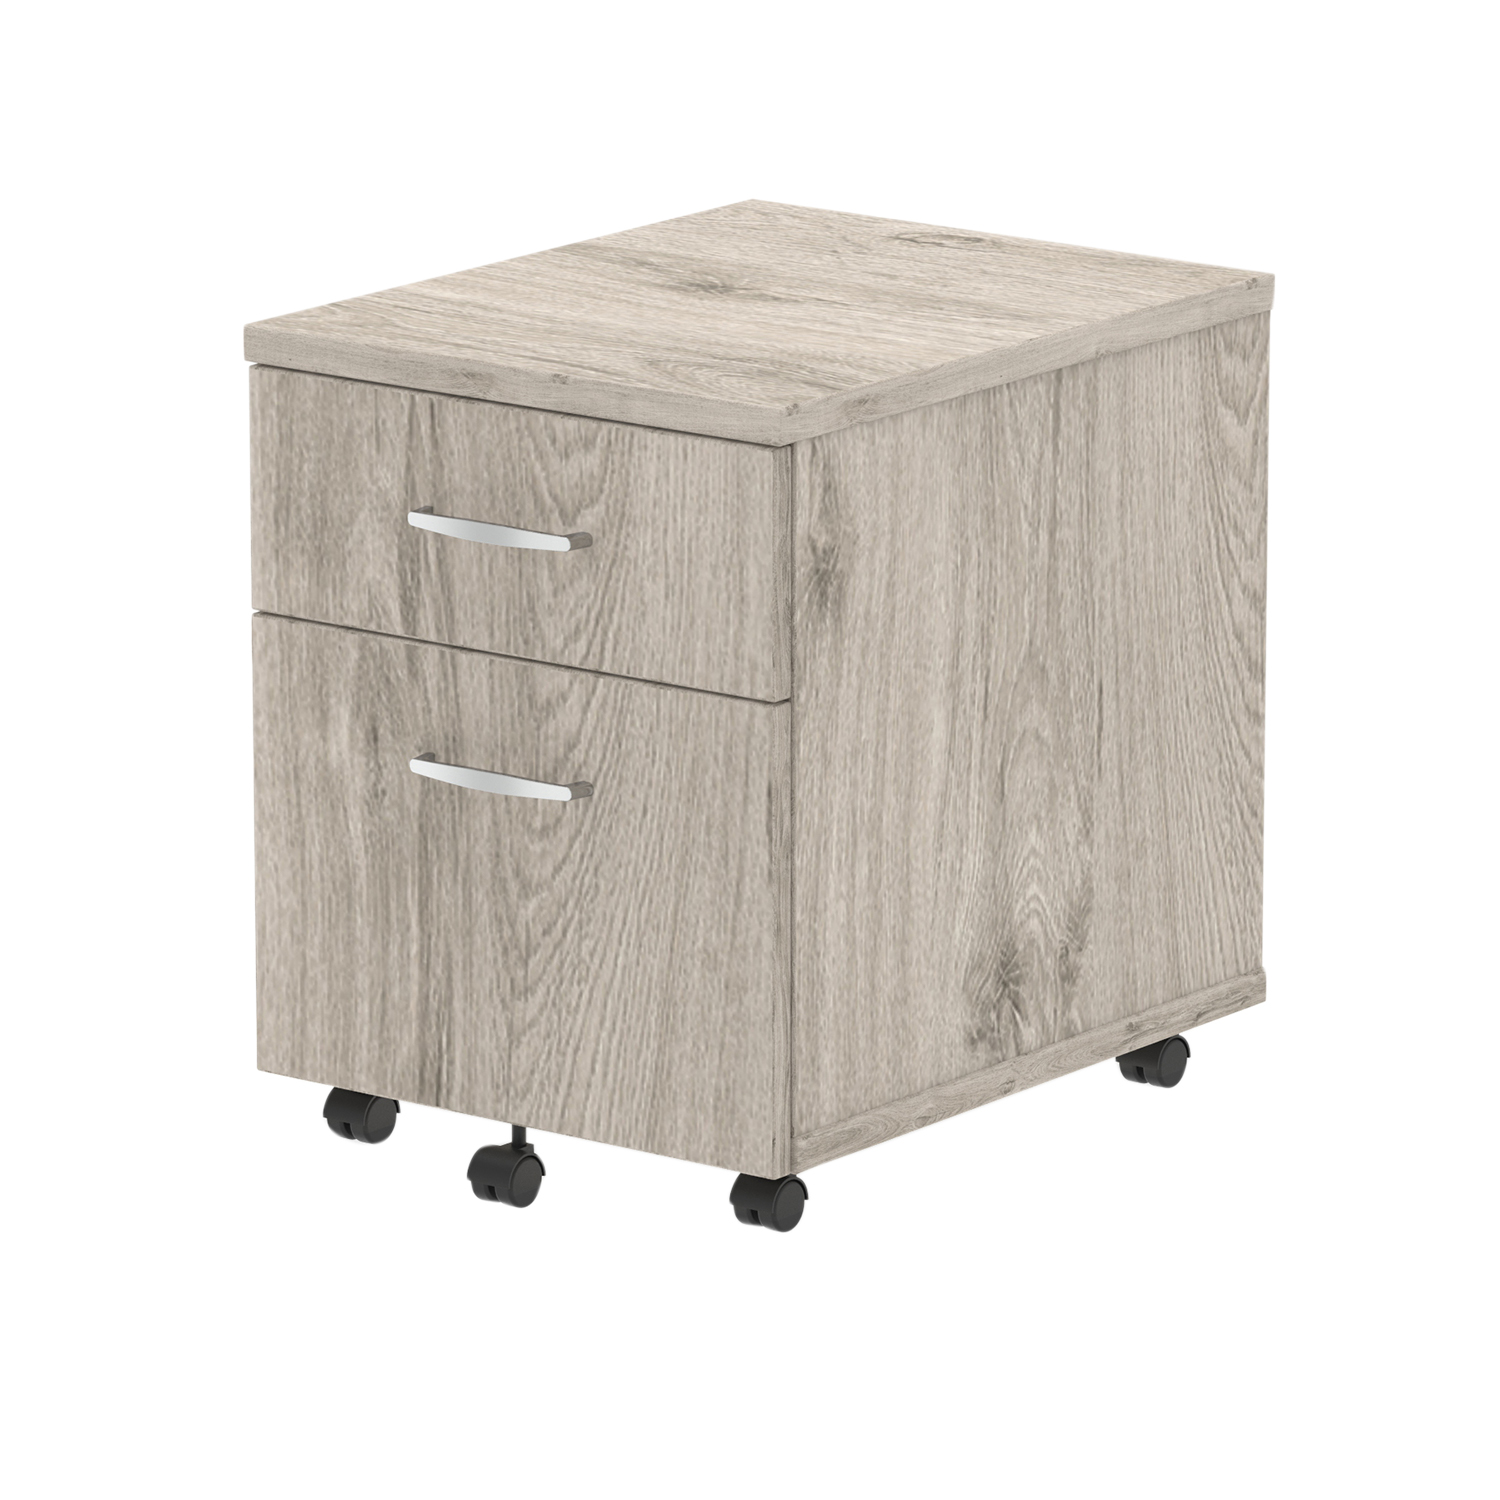 Trexus 2 Drawer Mobile Pedestal 430x500x510mm Grey Oak Ref I003223